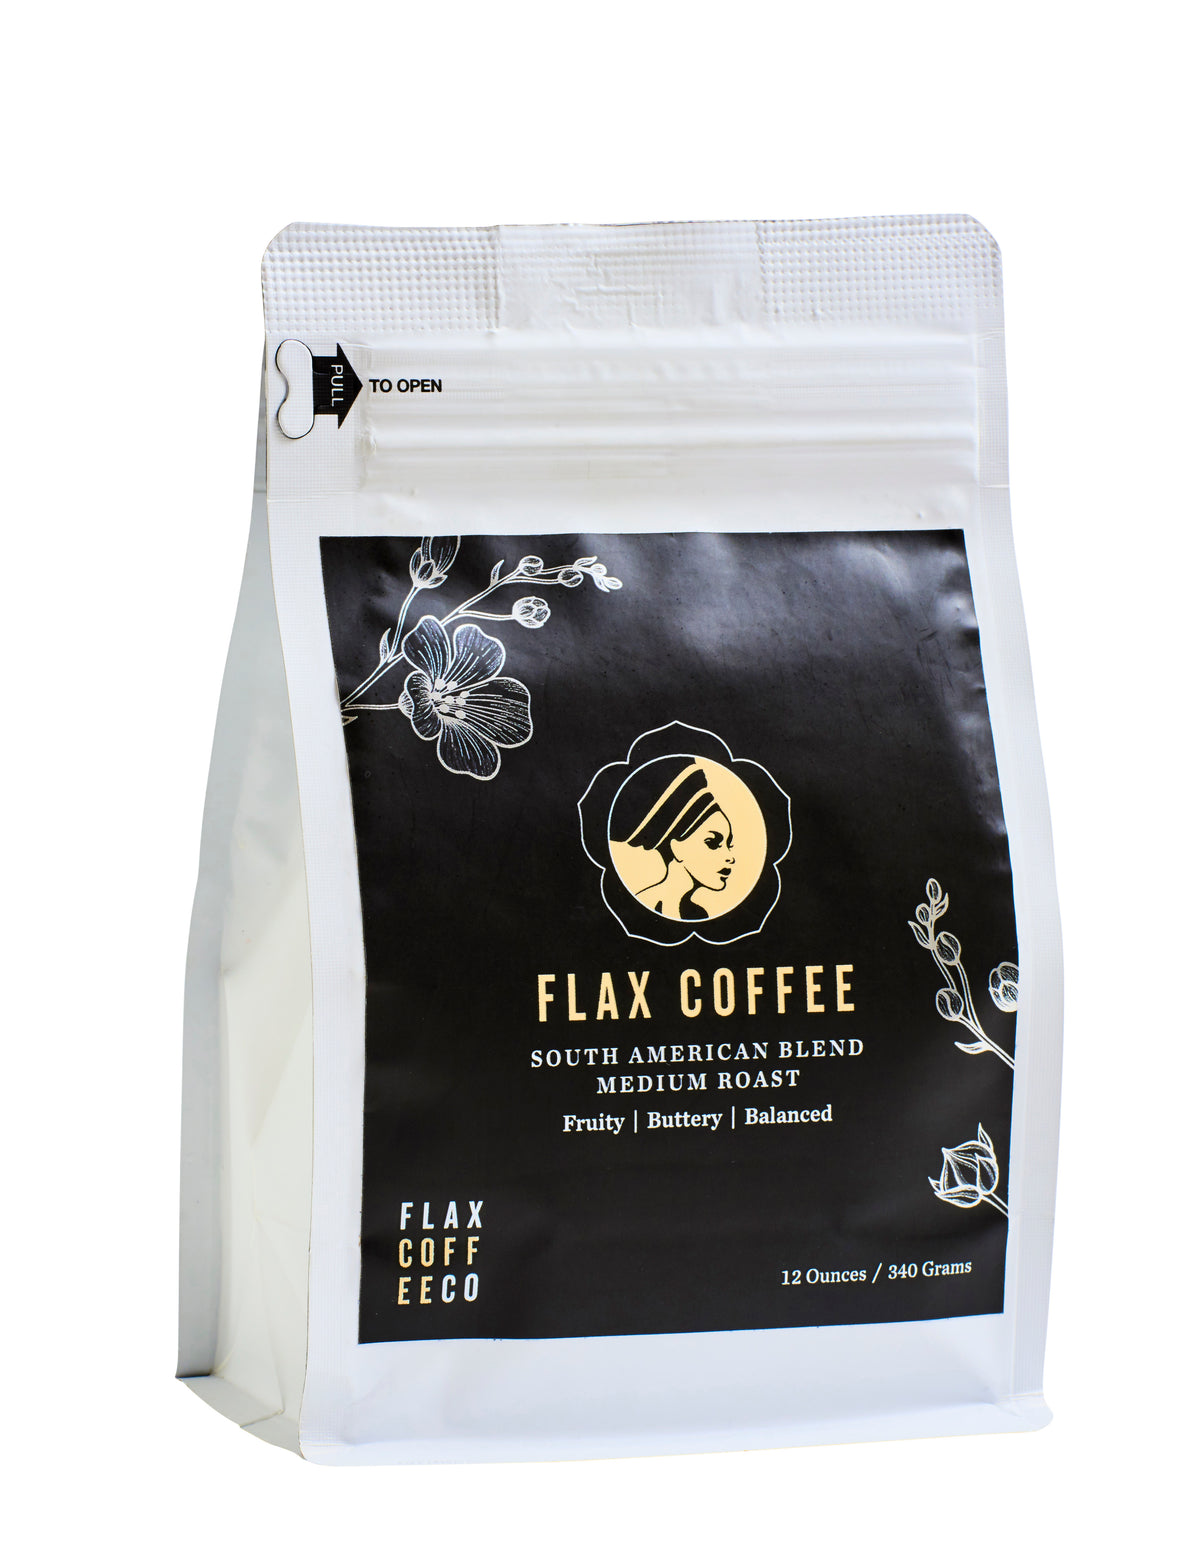 South American Blend - Flax Coffee